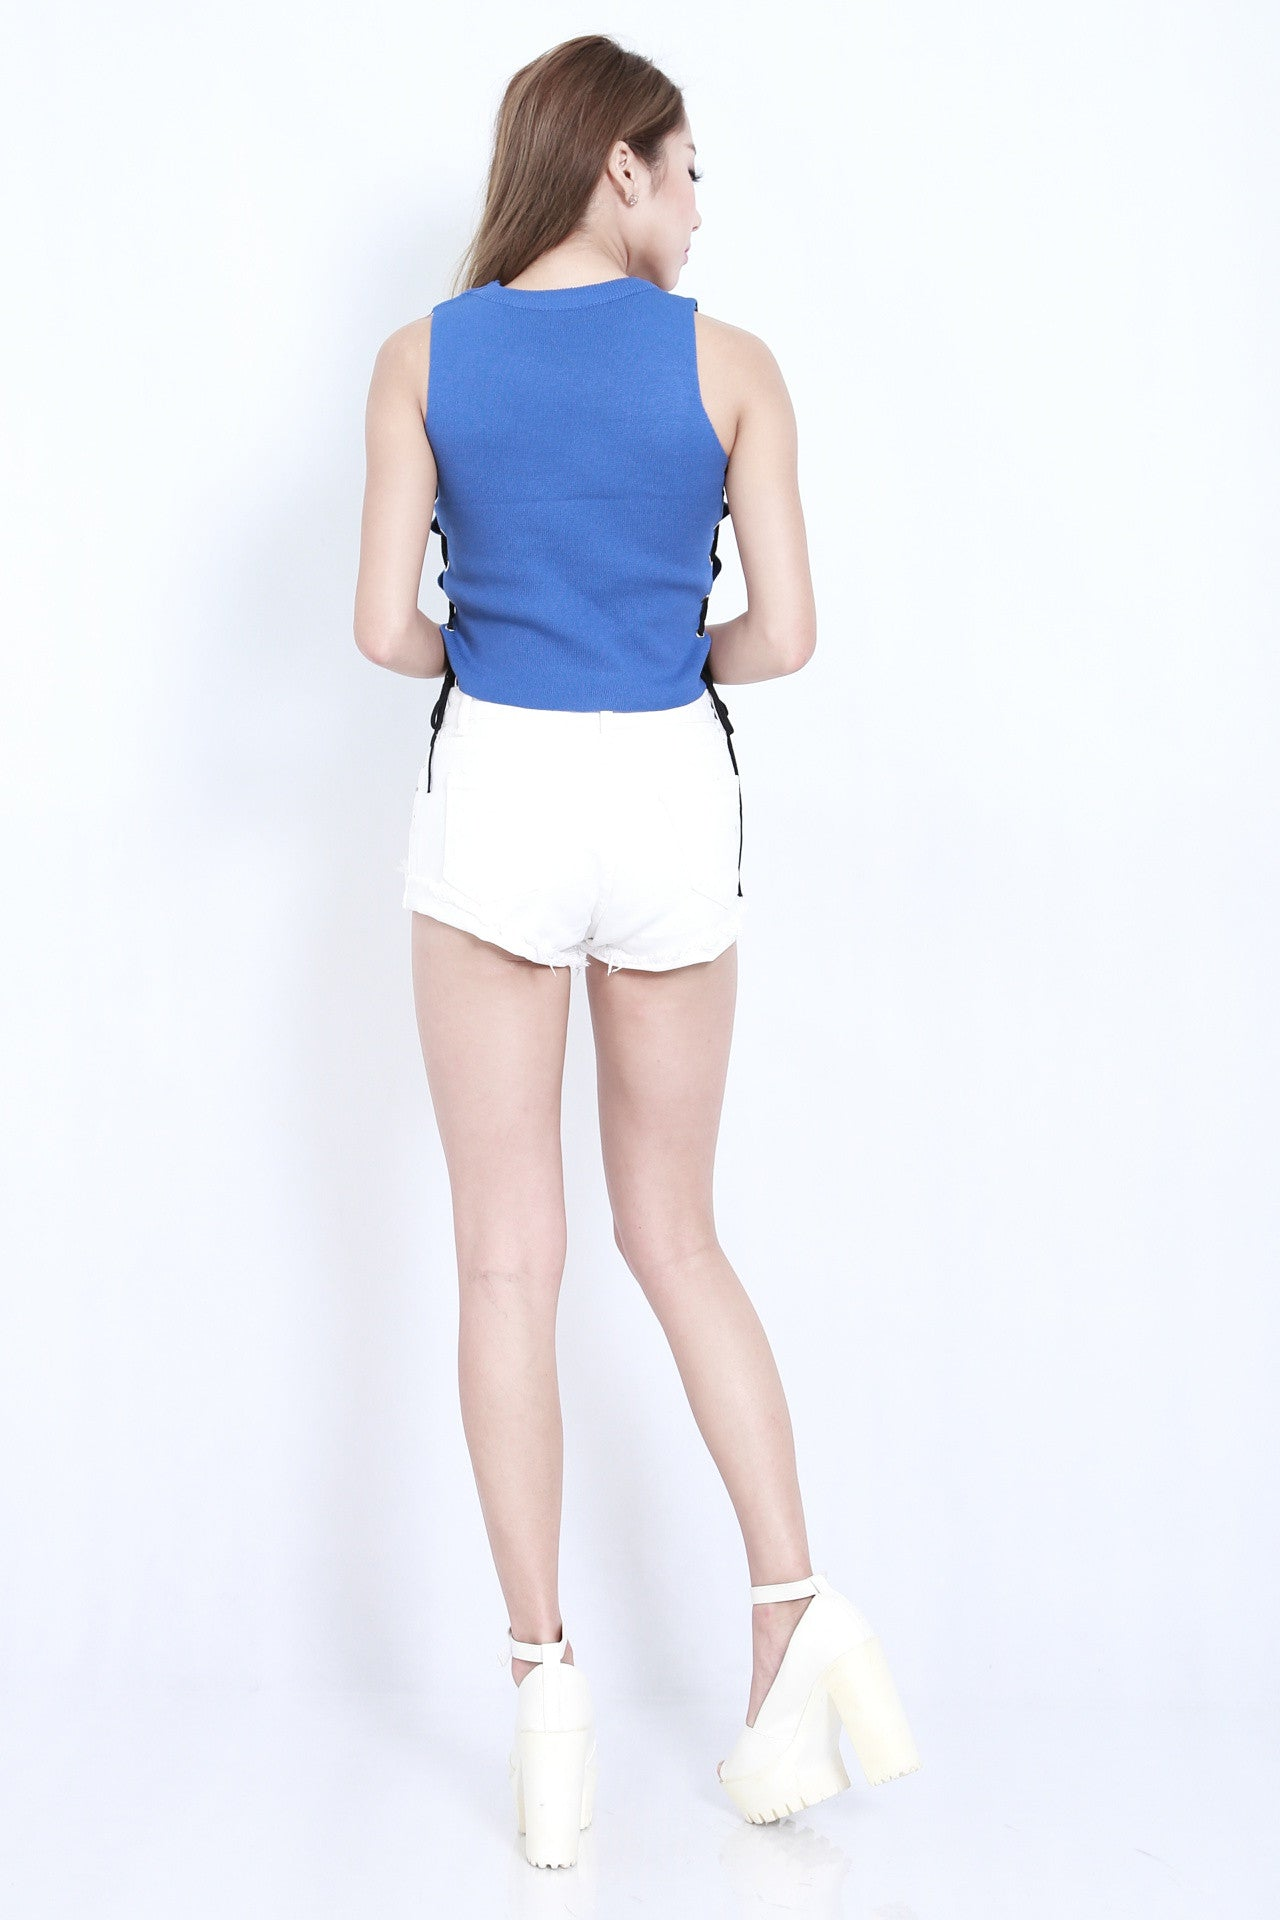 (RESTOCKED) OVEREASY LACED KNIT TOP IN BLUE - TOPAZETTE